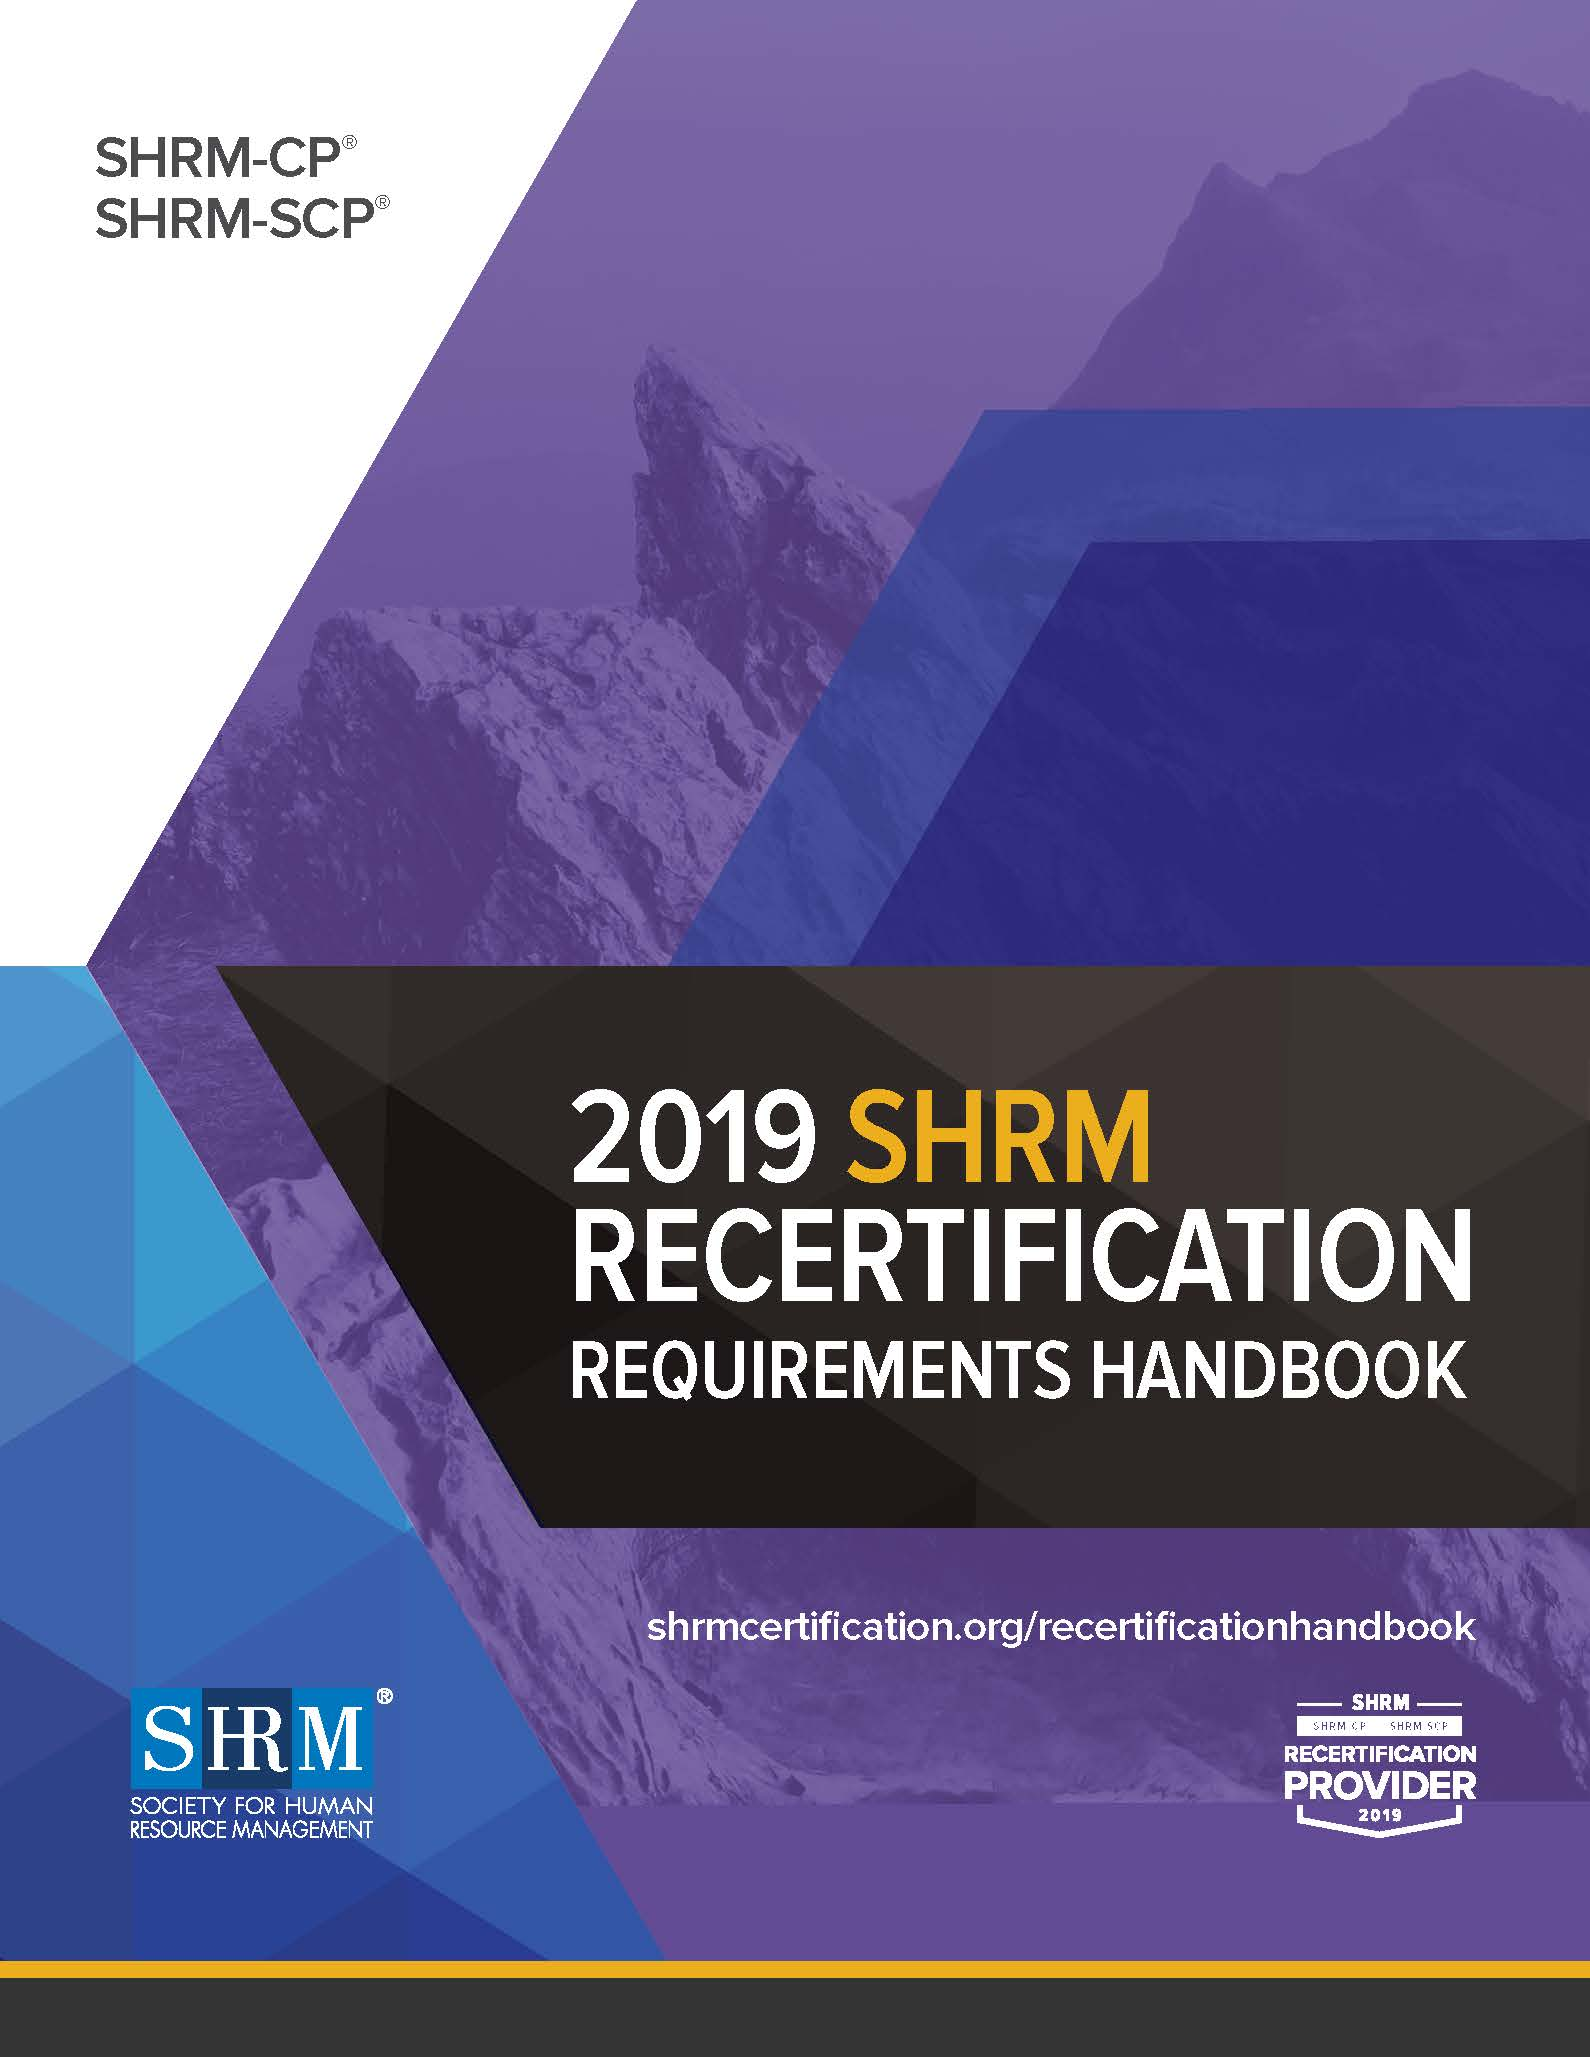 SHRM Recertification Handbook